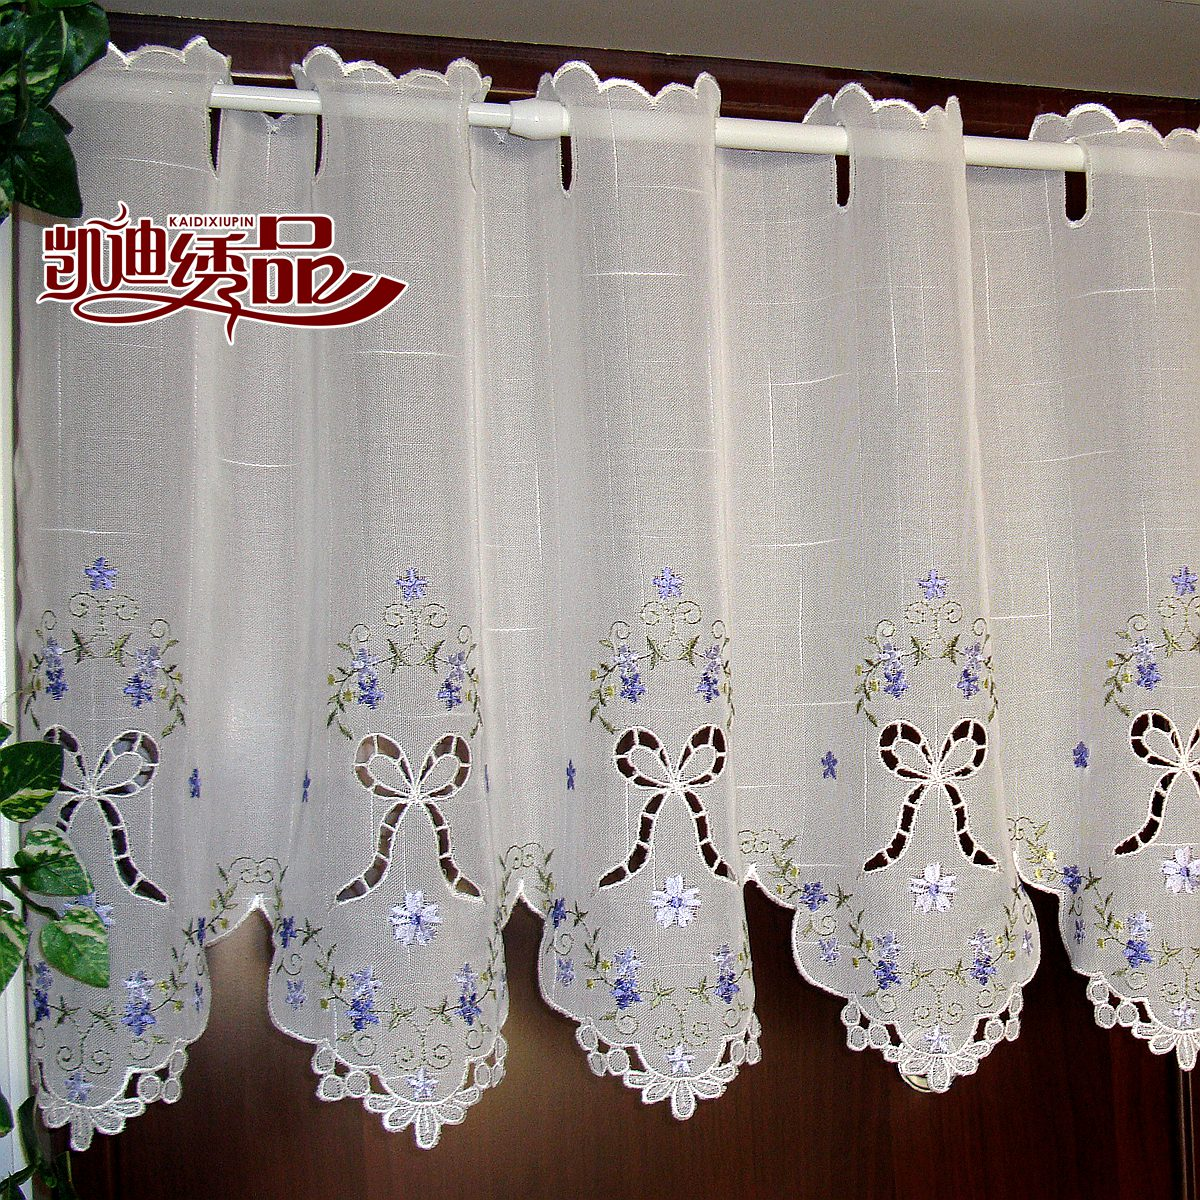 Kitchen Curtain Fabric For Sale Paisley Fabric for Curtains